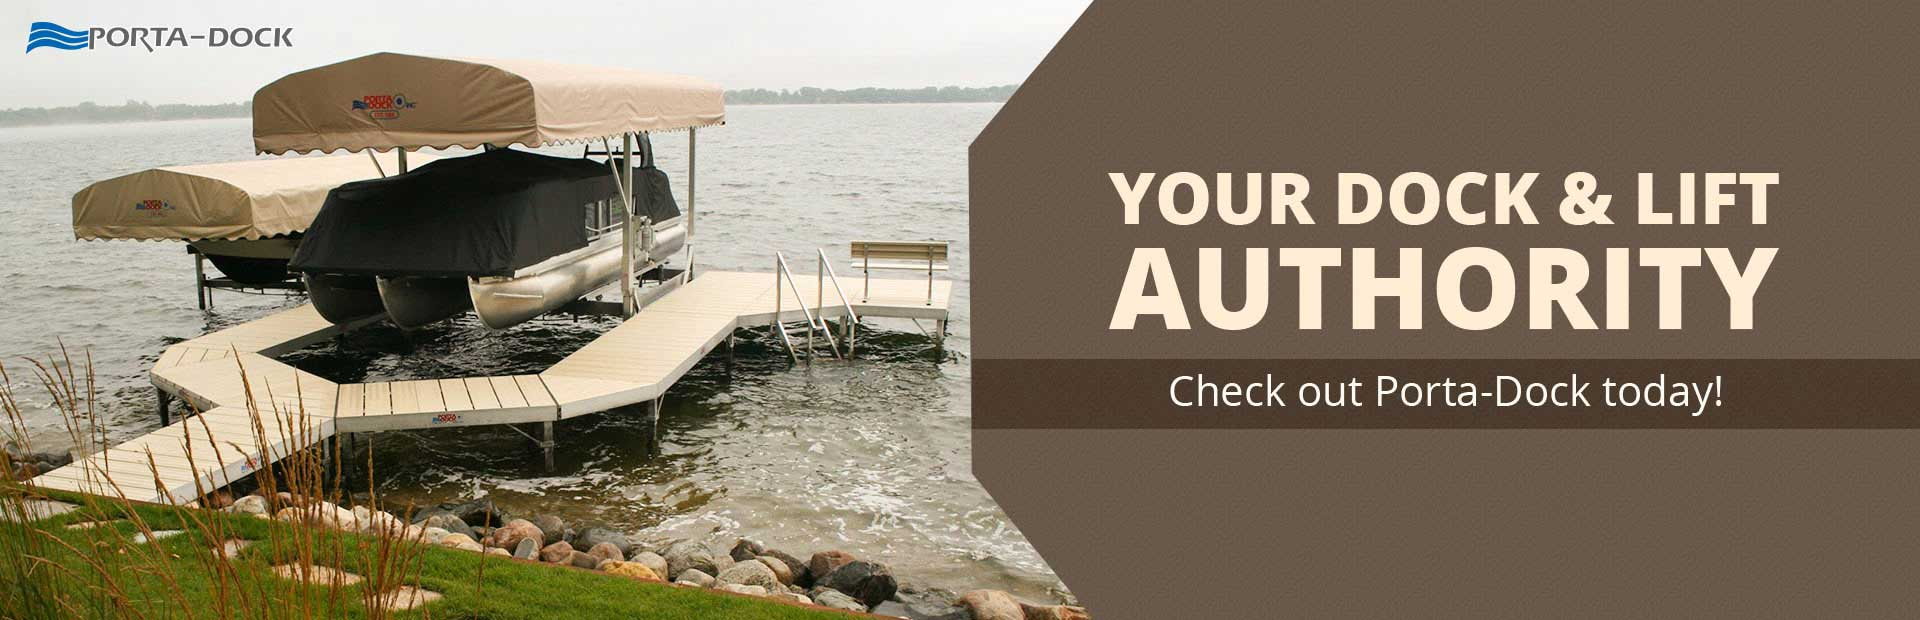 Grand Rapids Marine is your dock and lift authority! Check out Porta-Dock today!